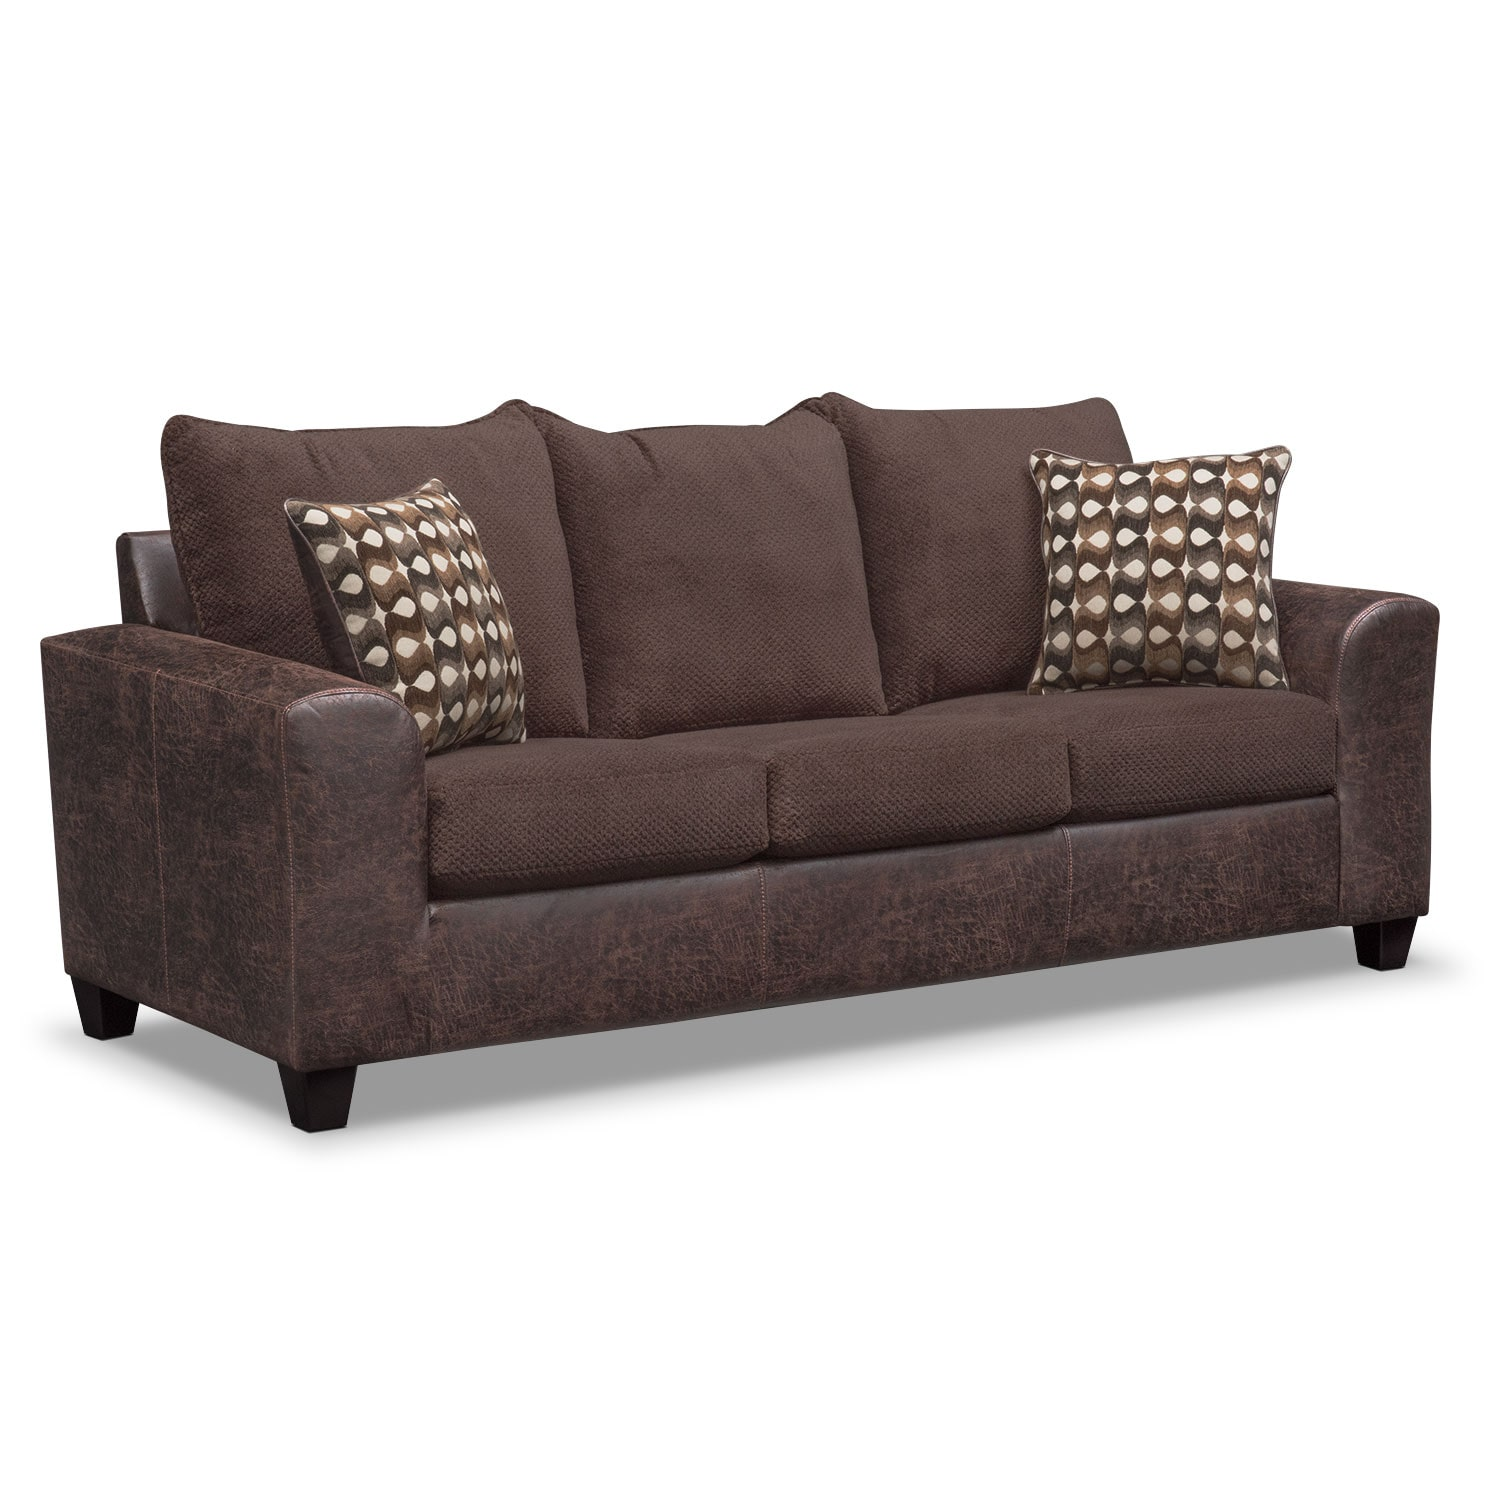 Brando Queen Memory Foam Sleeper Sofa And Loveseat Set